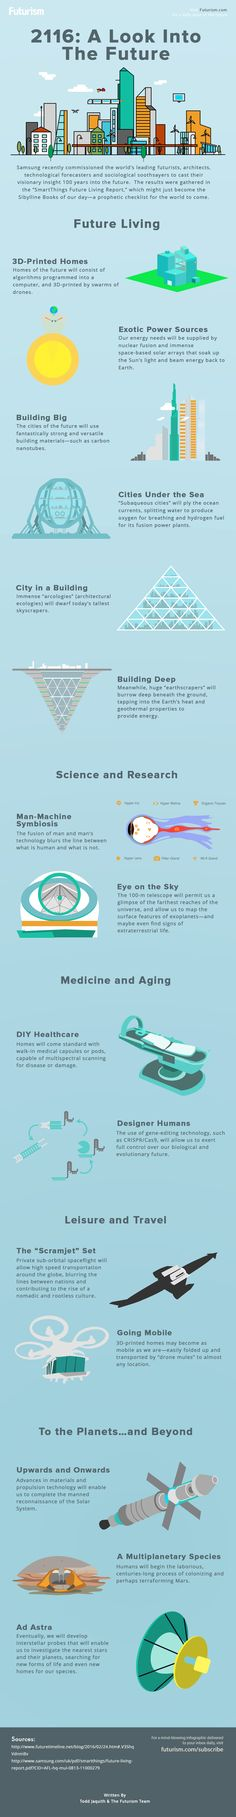 2116: A Look Into The Future [INFOGRAPHIC]